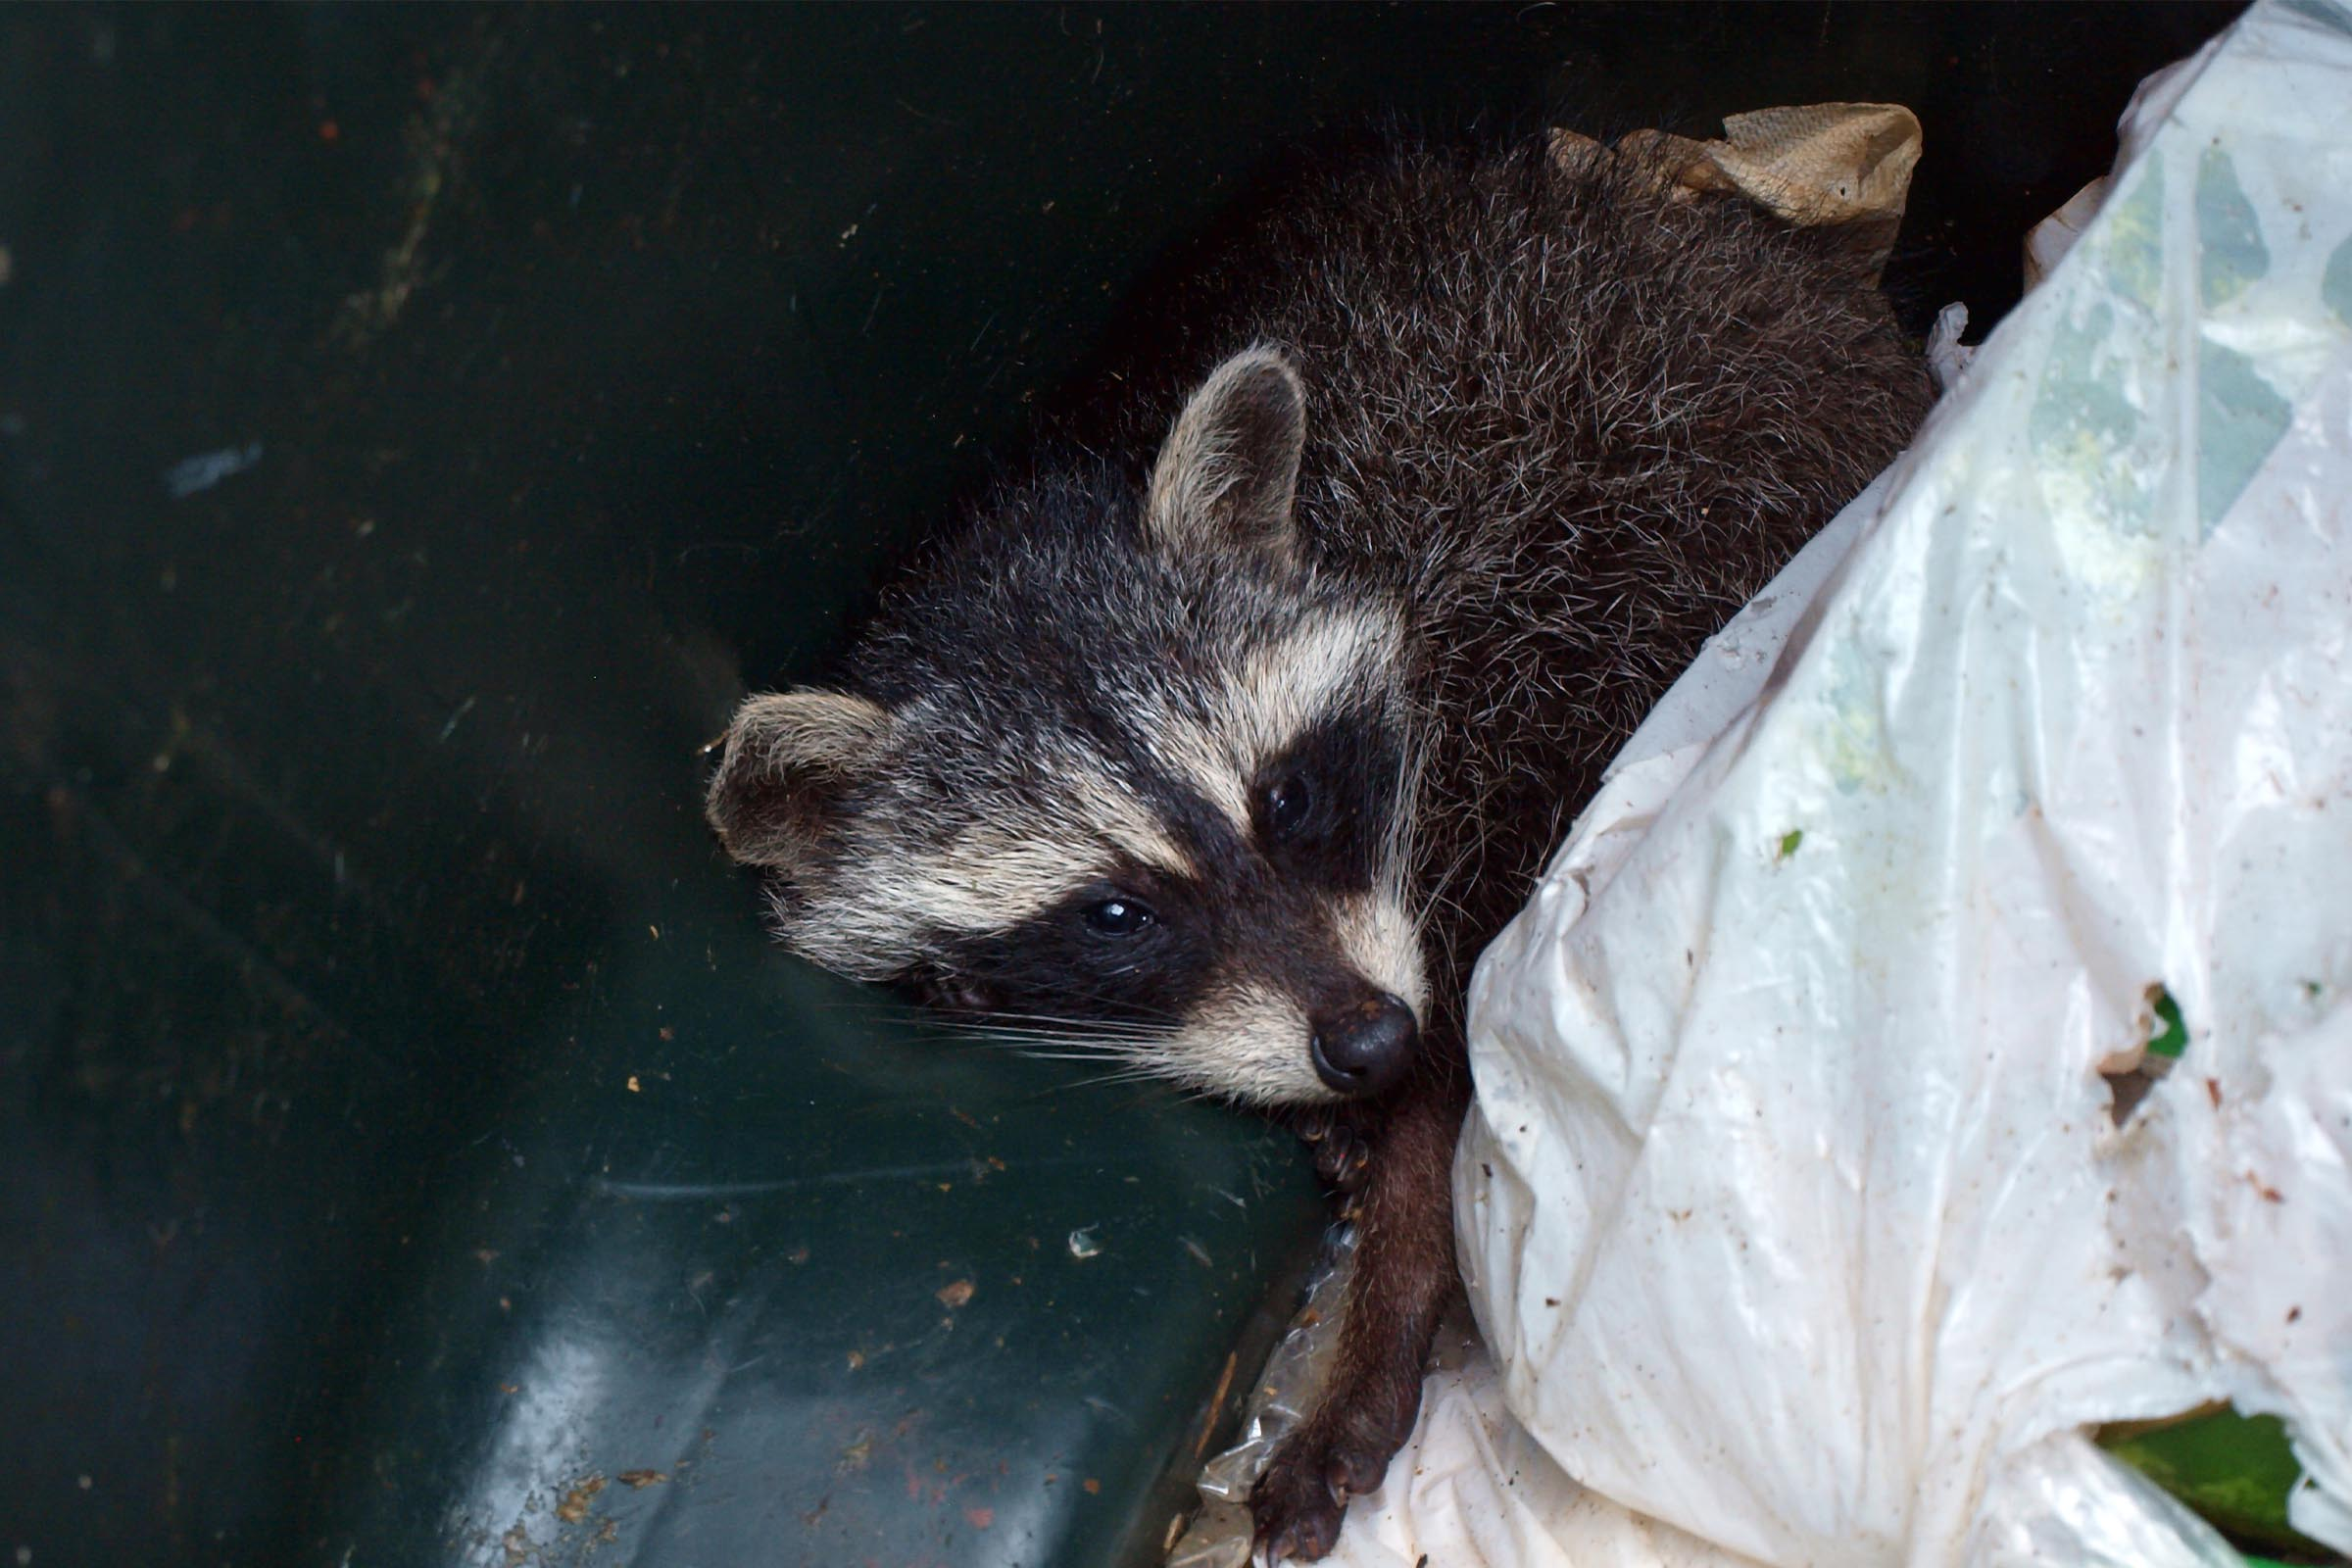 raccoon in trashcan trouble getting him out